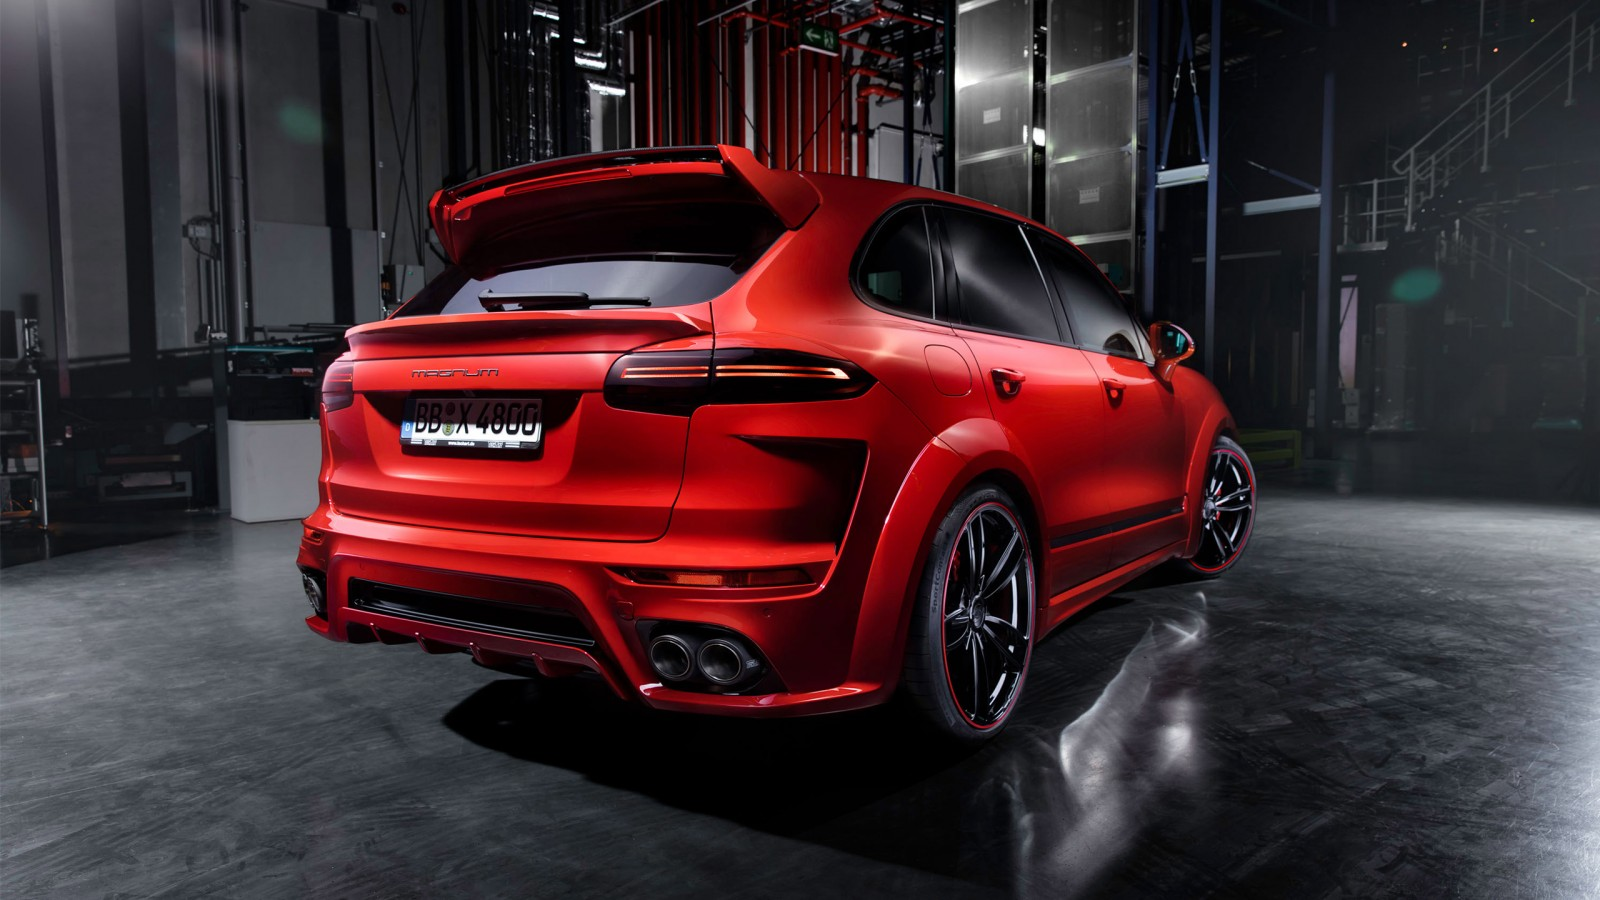 2015 Techart Porsche Cayenne Magnum 4 Wallpaper Hd Car